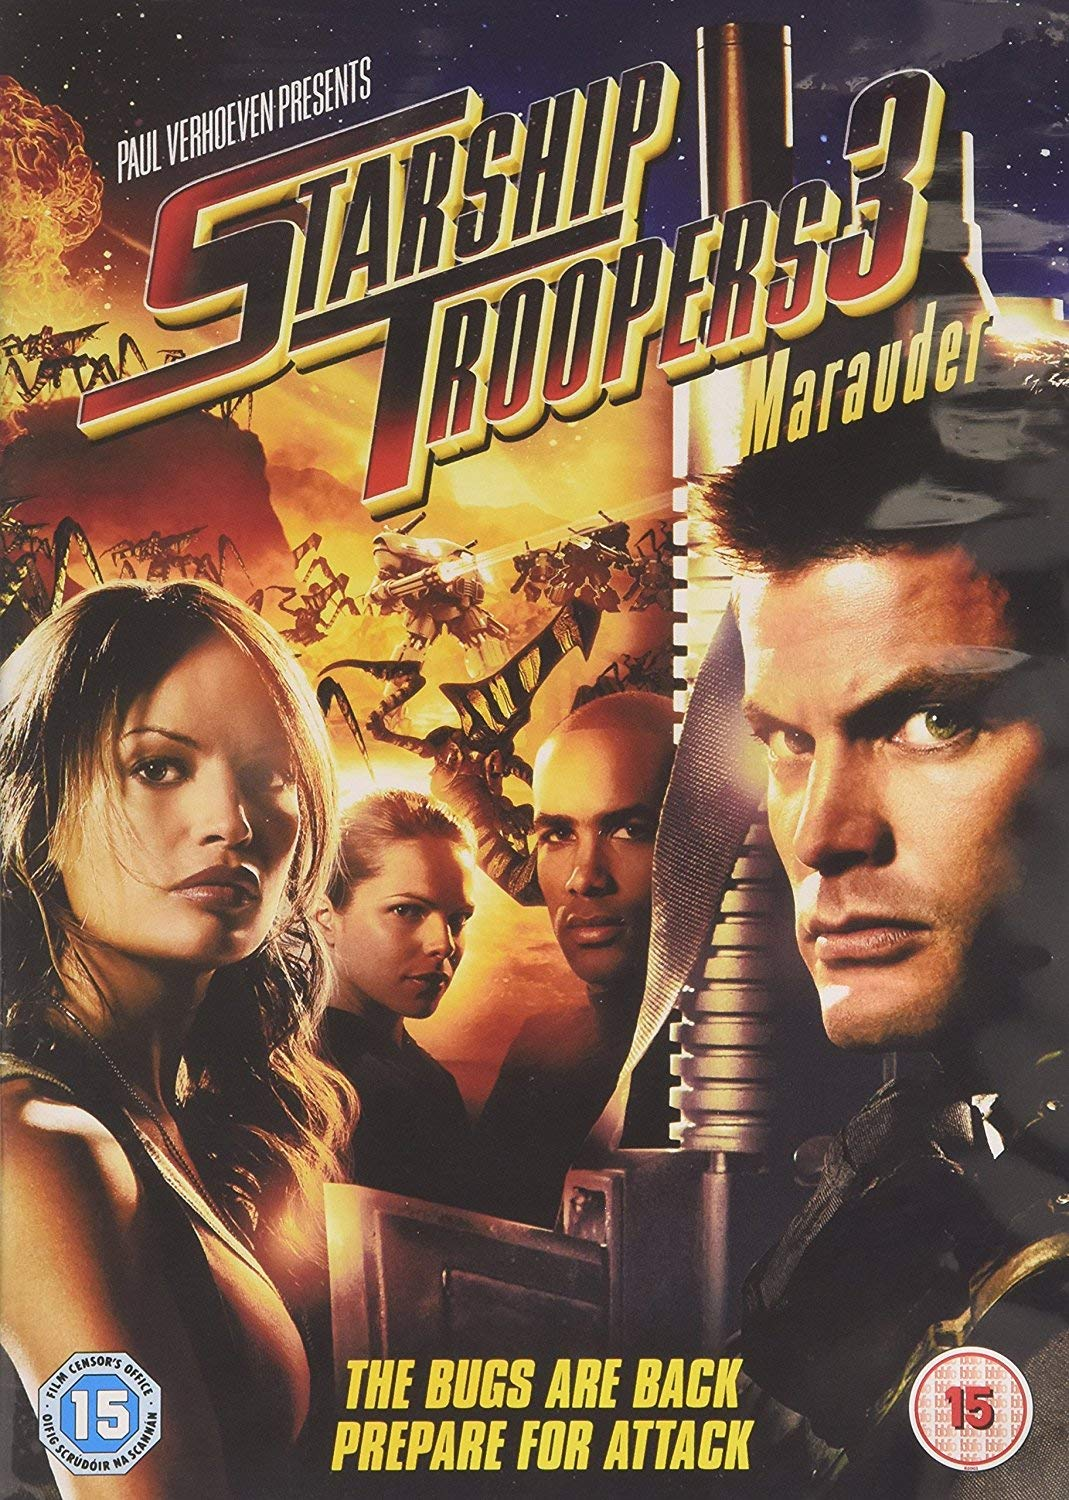 Amazon.com: Starship Troopers 3: Marauder [DVD] [2008]: Movies & TV